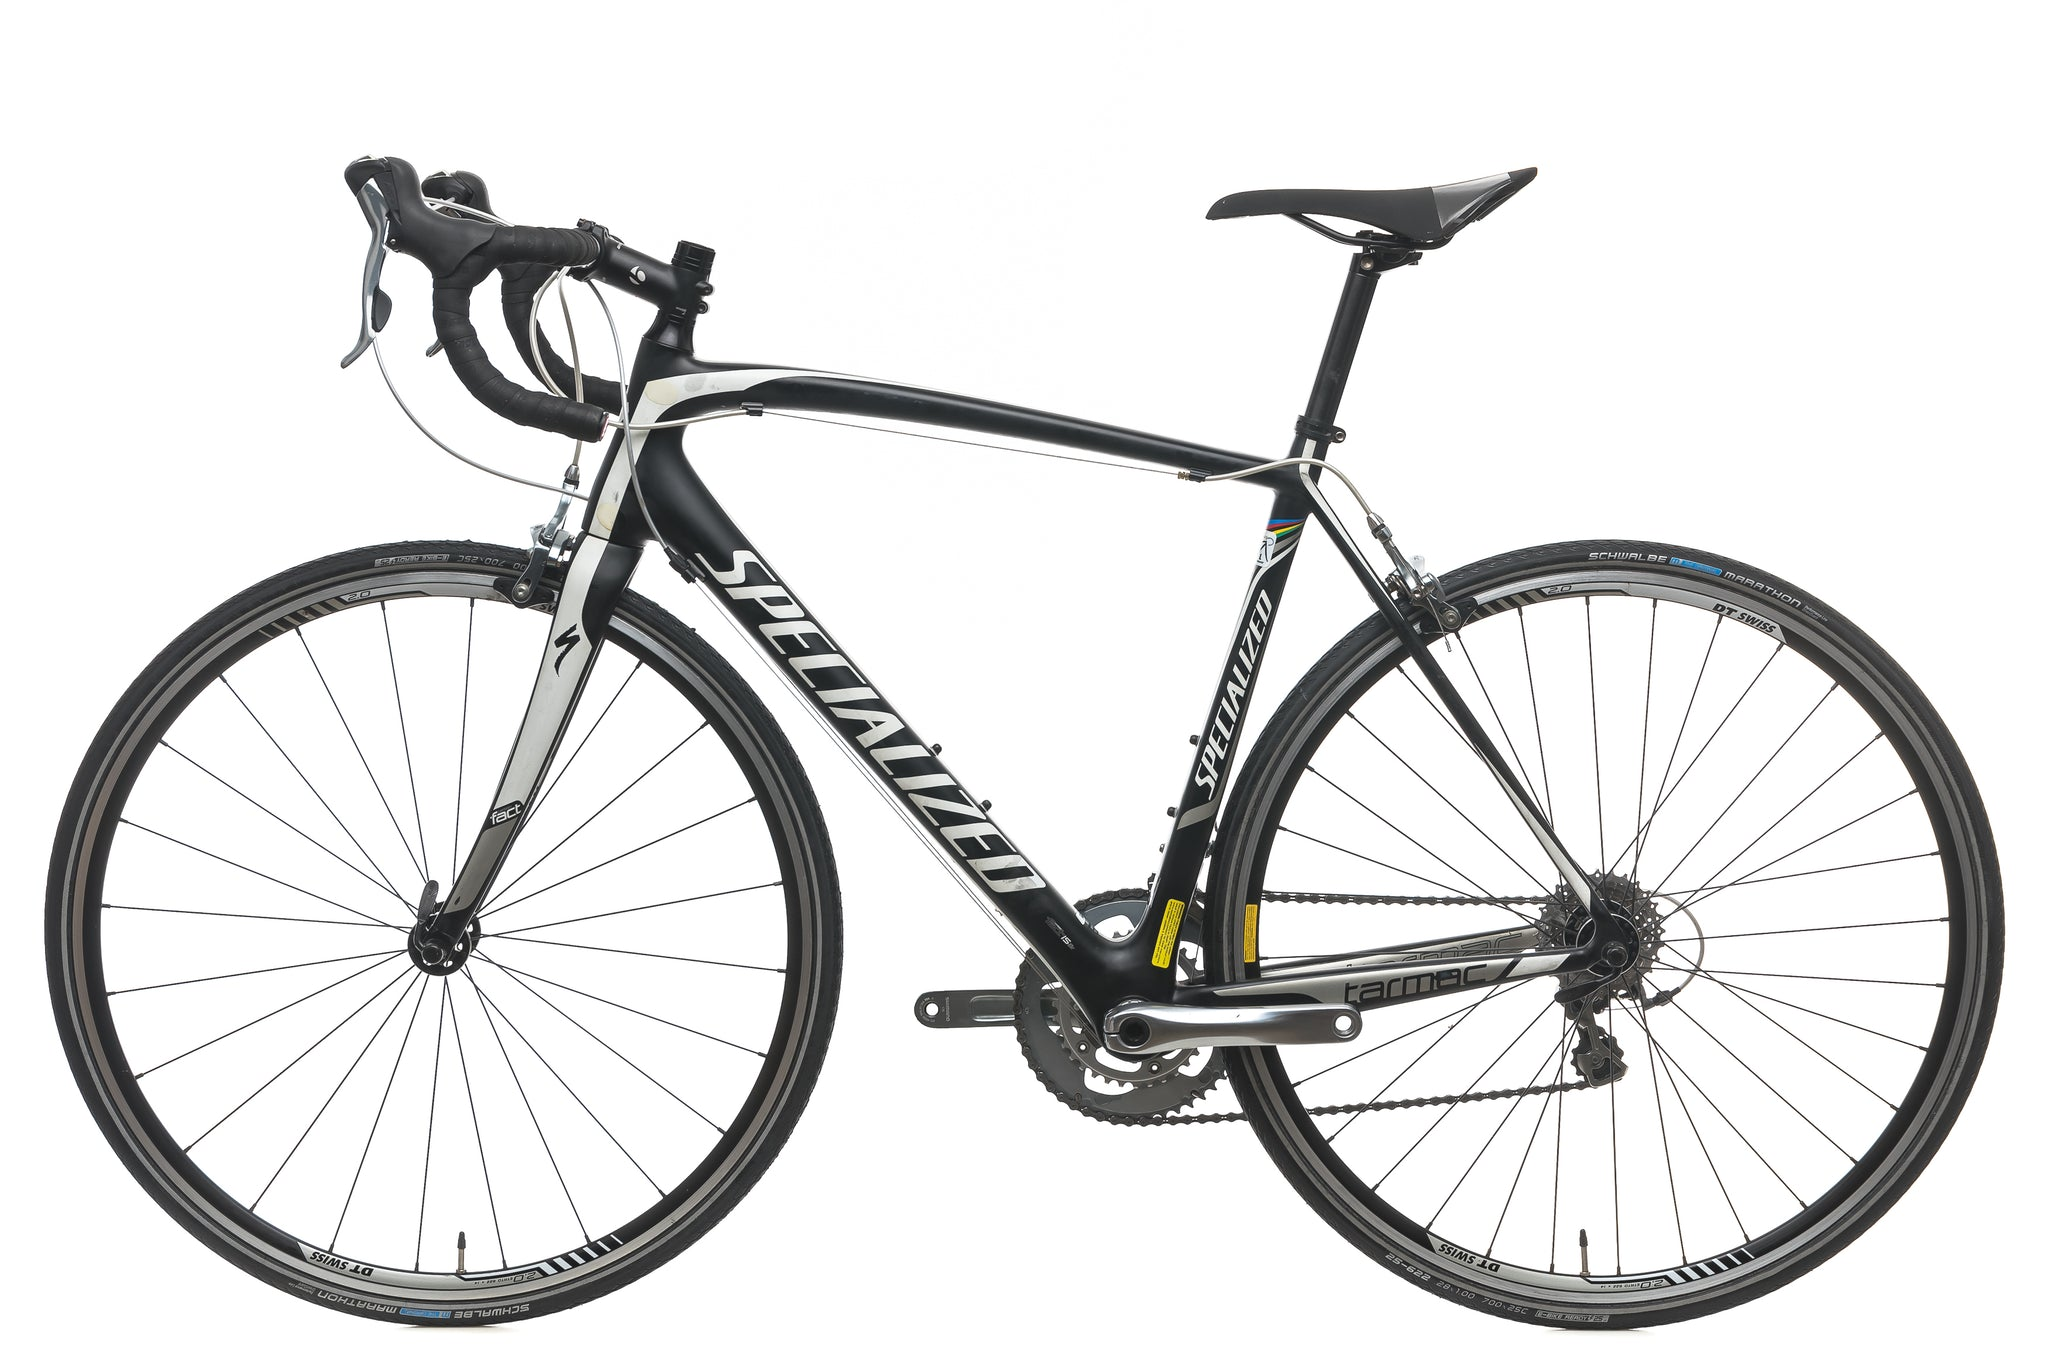 Specialized Tarmac Compact 56cm Bike - 2012